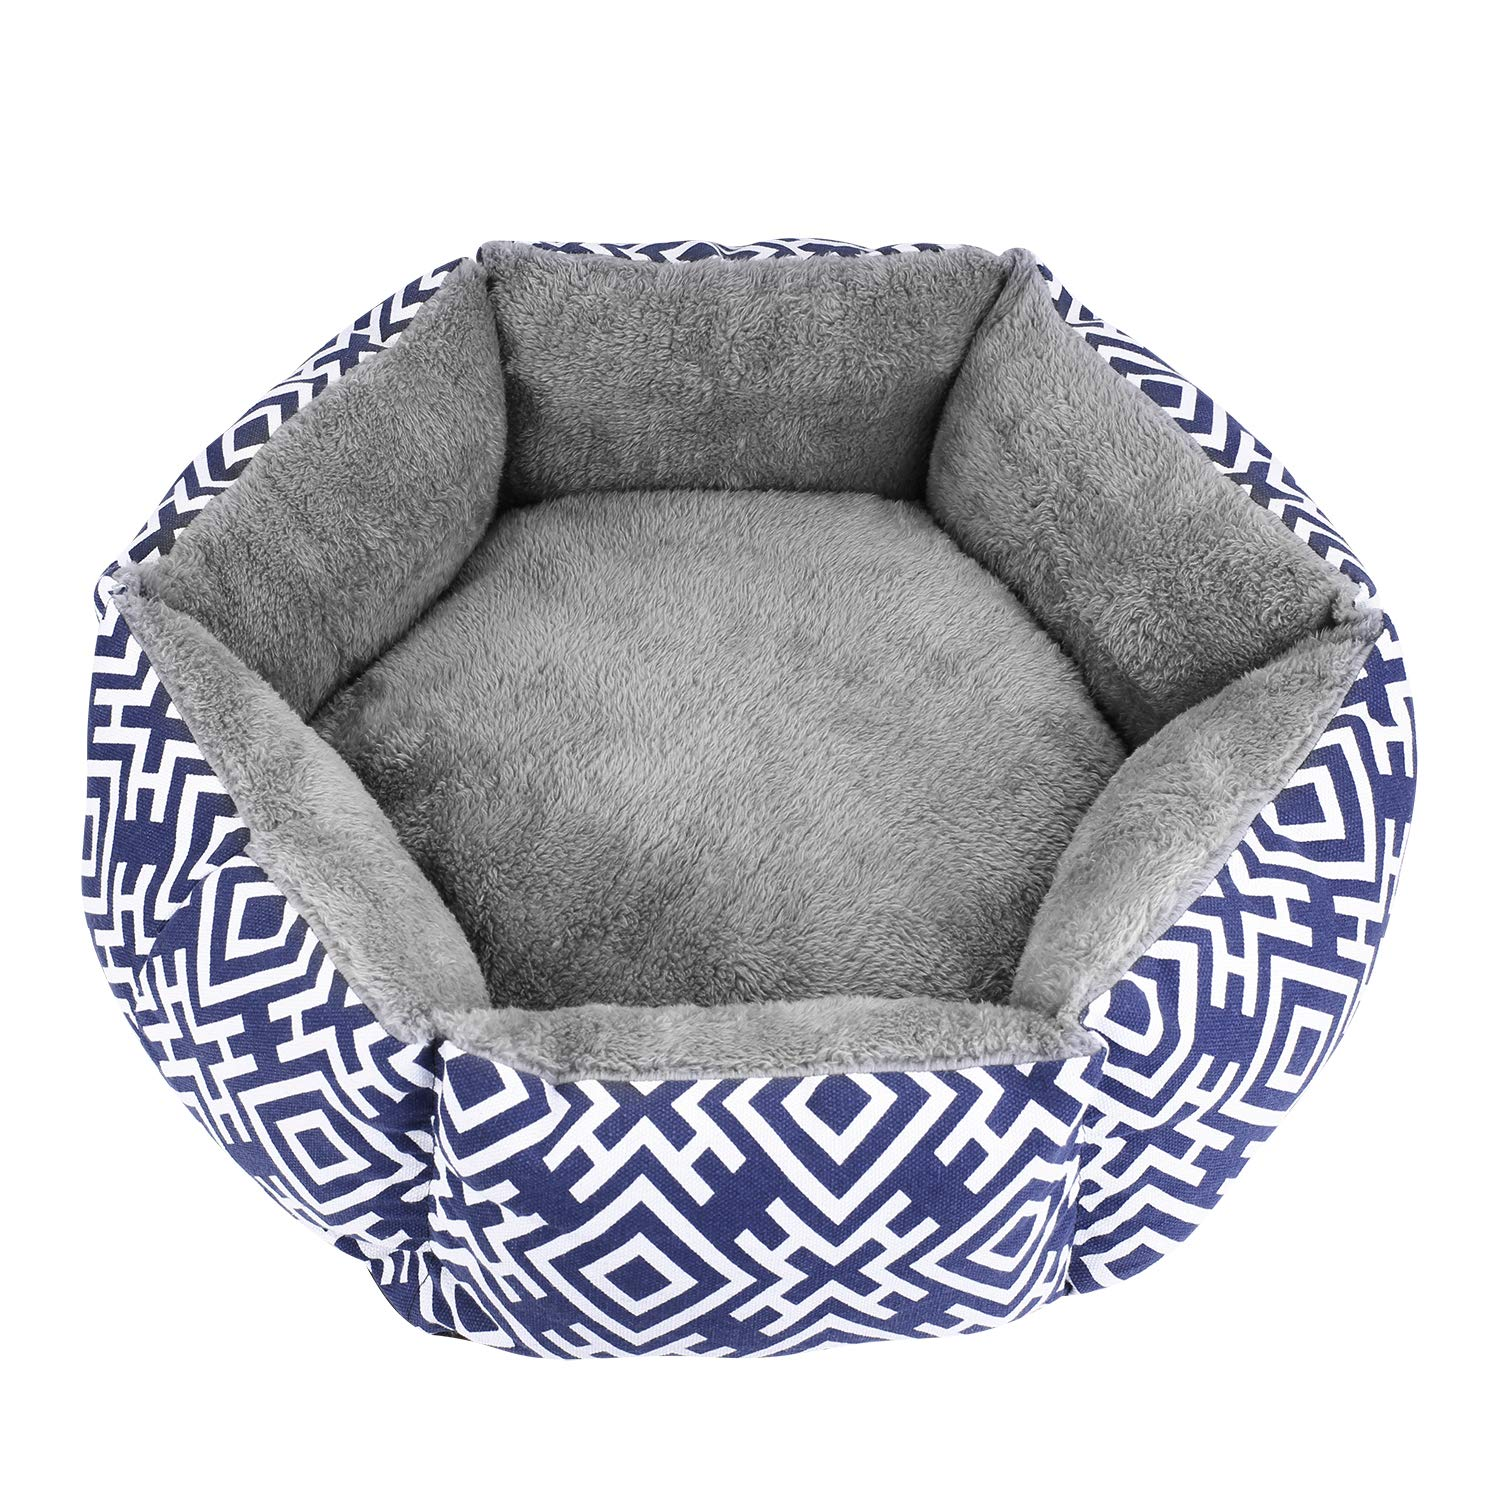 Akarden Cat Bed, Comfortable Cat & Dog House Bed, Self Warming Indoor Pet Bed, Machine Washable by Akarden